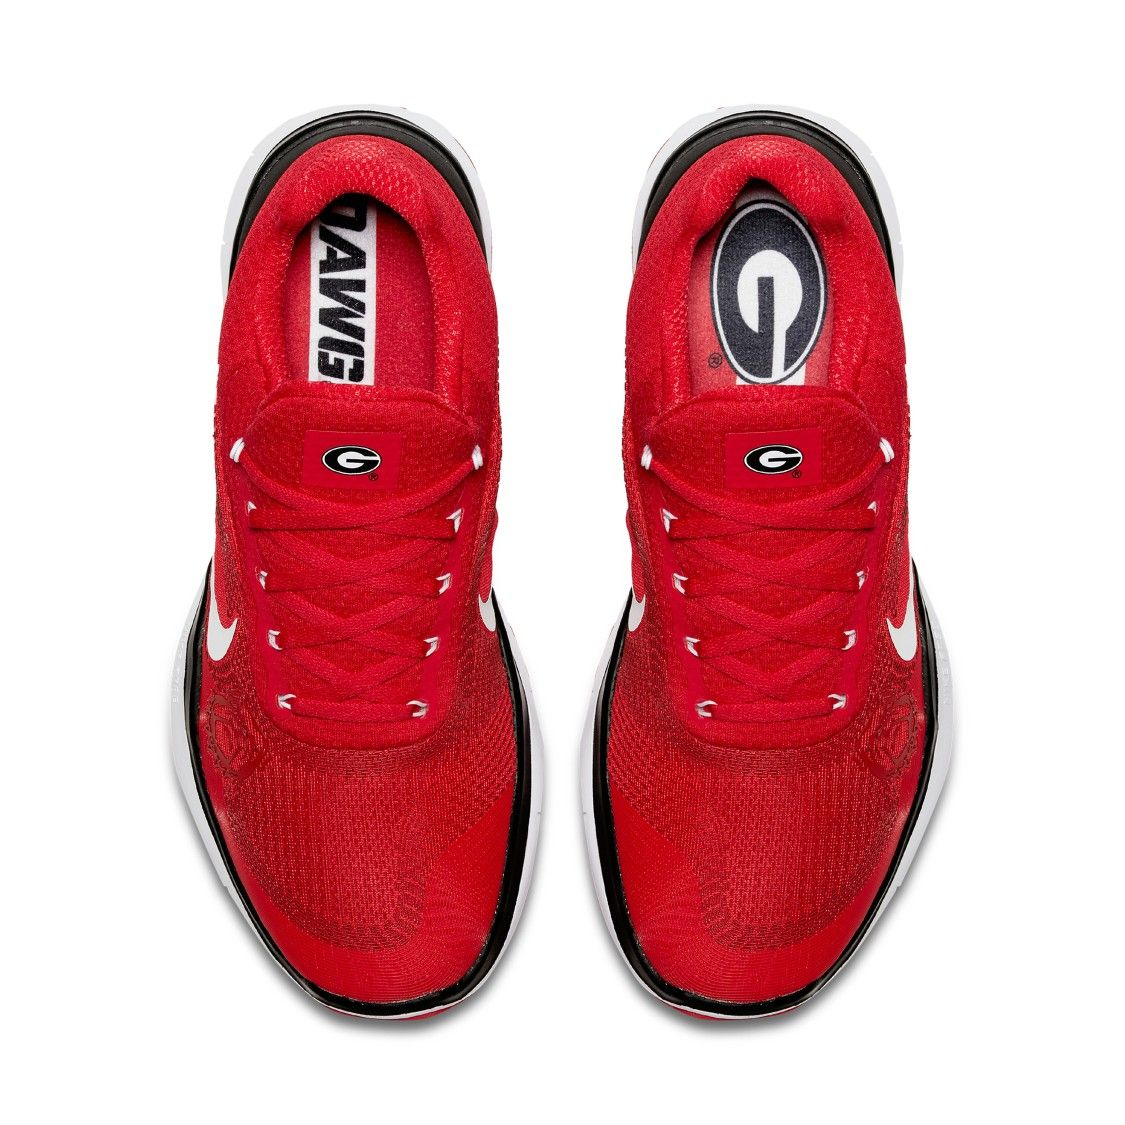 Get Your Pair Of Georgia Bulldogs Nike Free Trainer V7 S The Nike